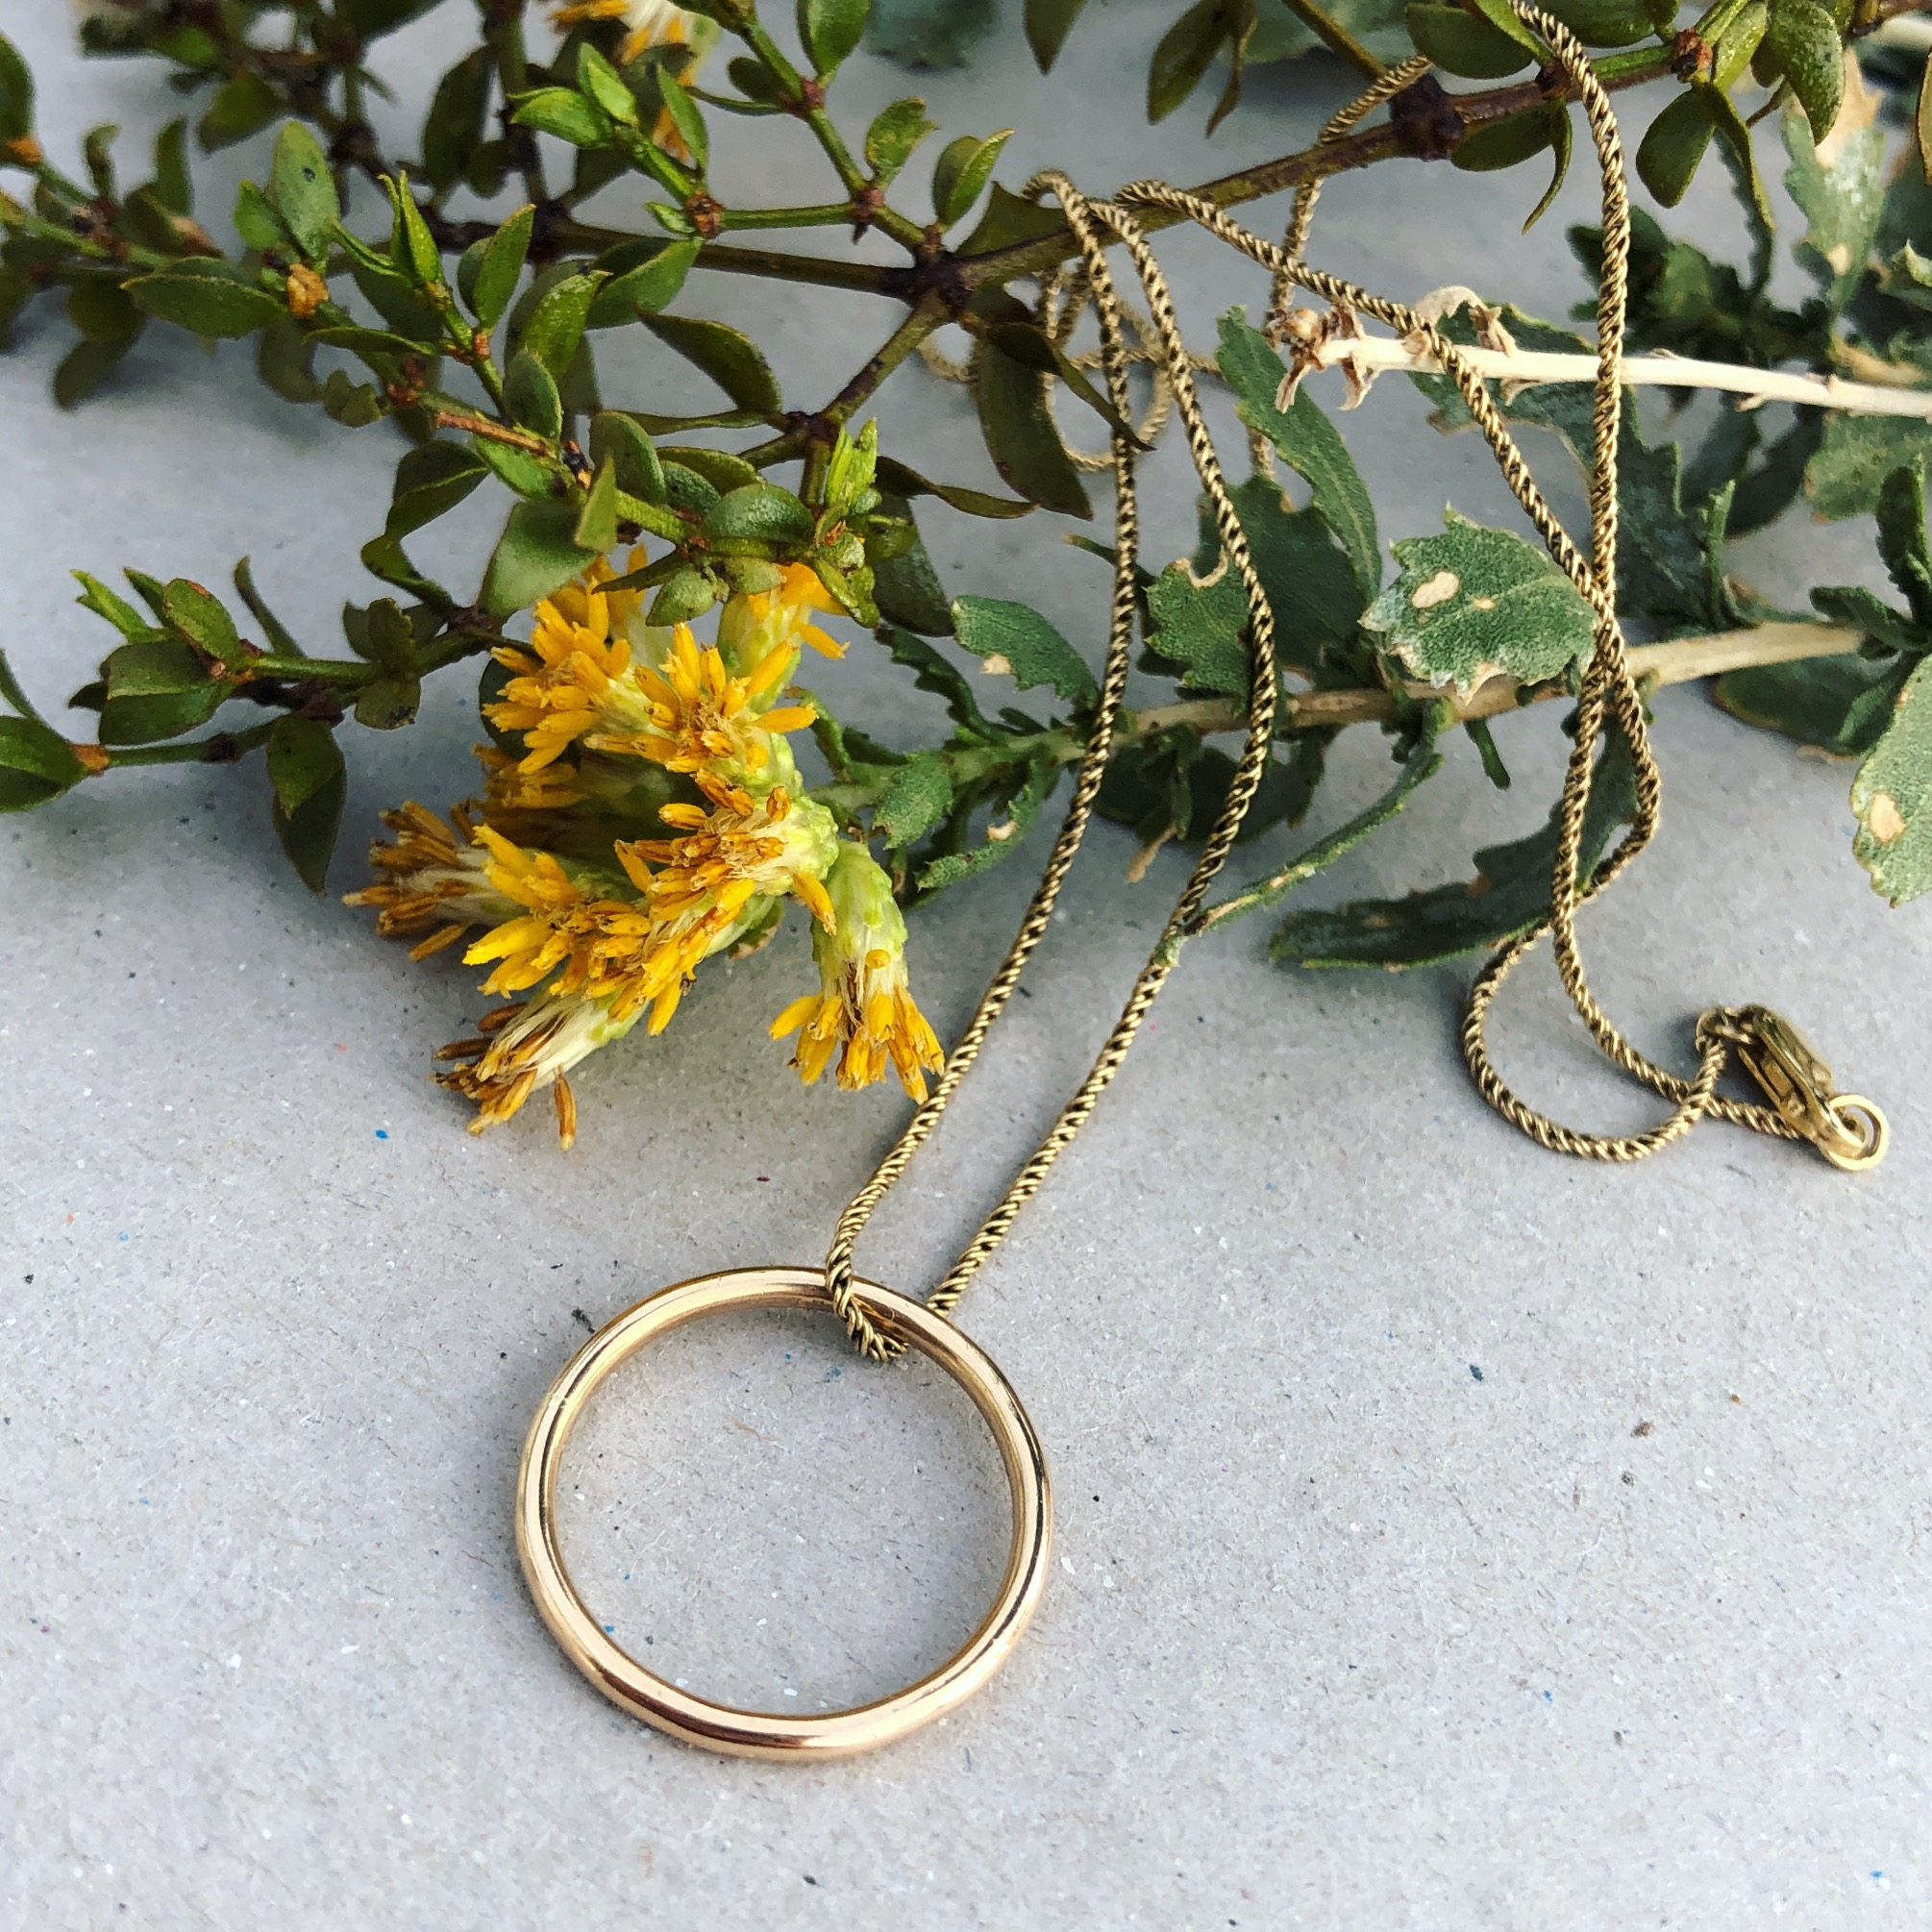 Joie necklace 14k gold fill agapantha jewelry.JPG